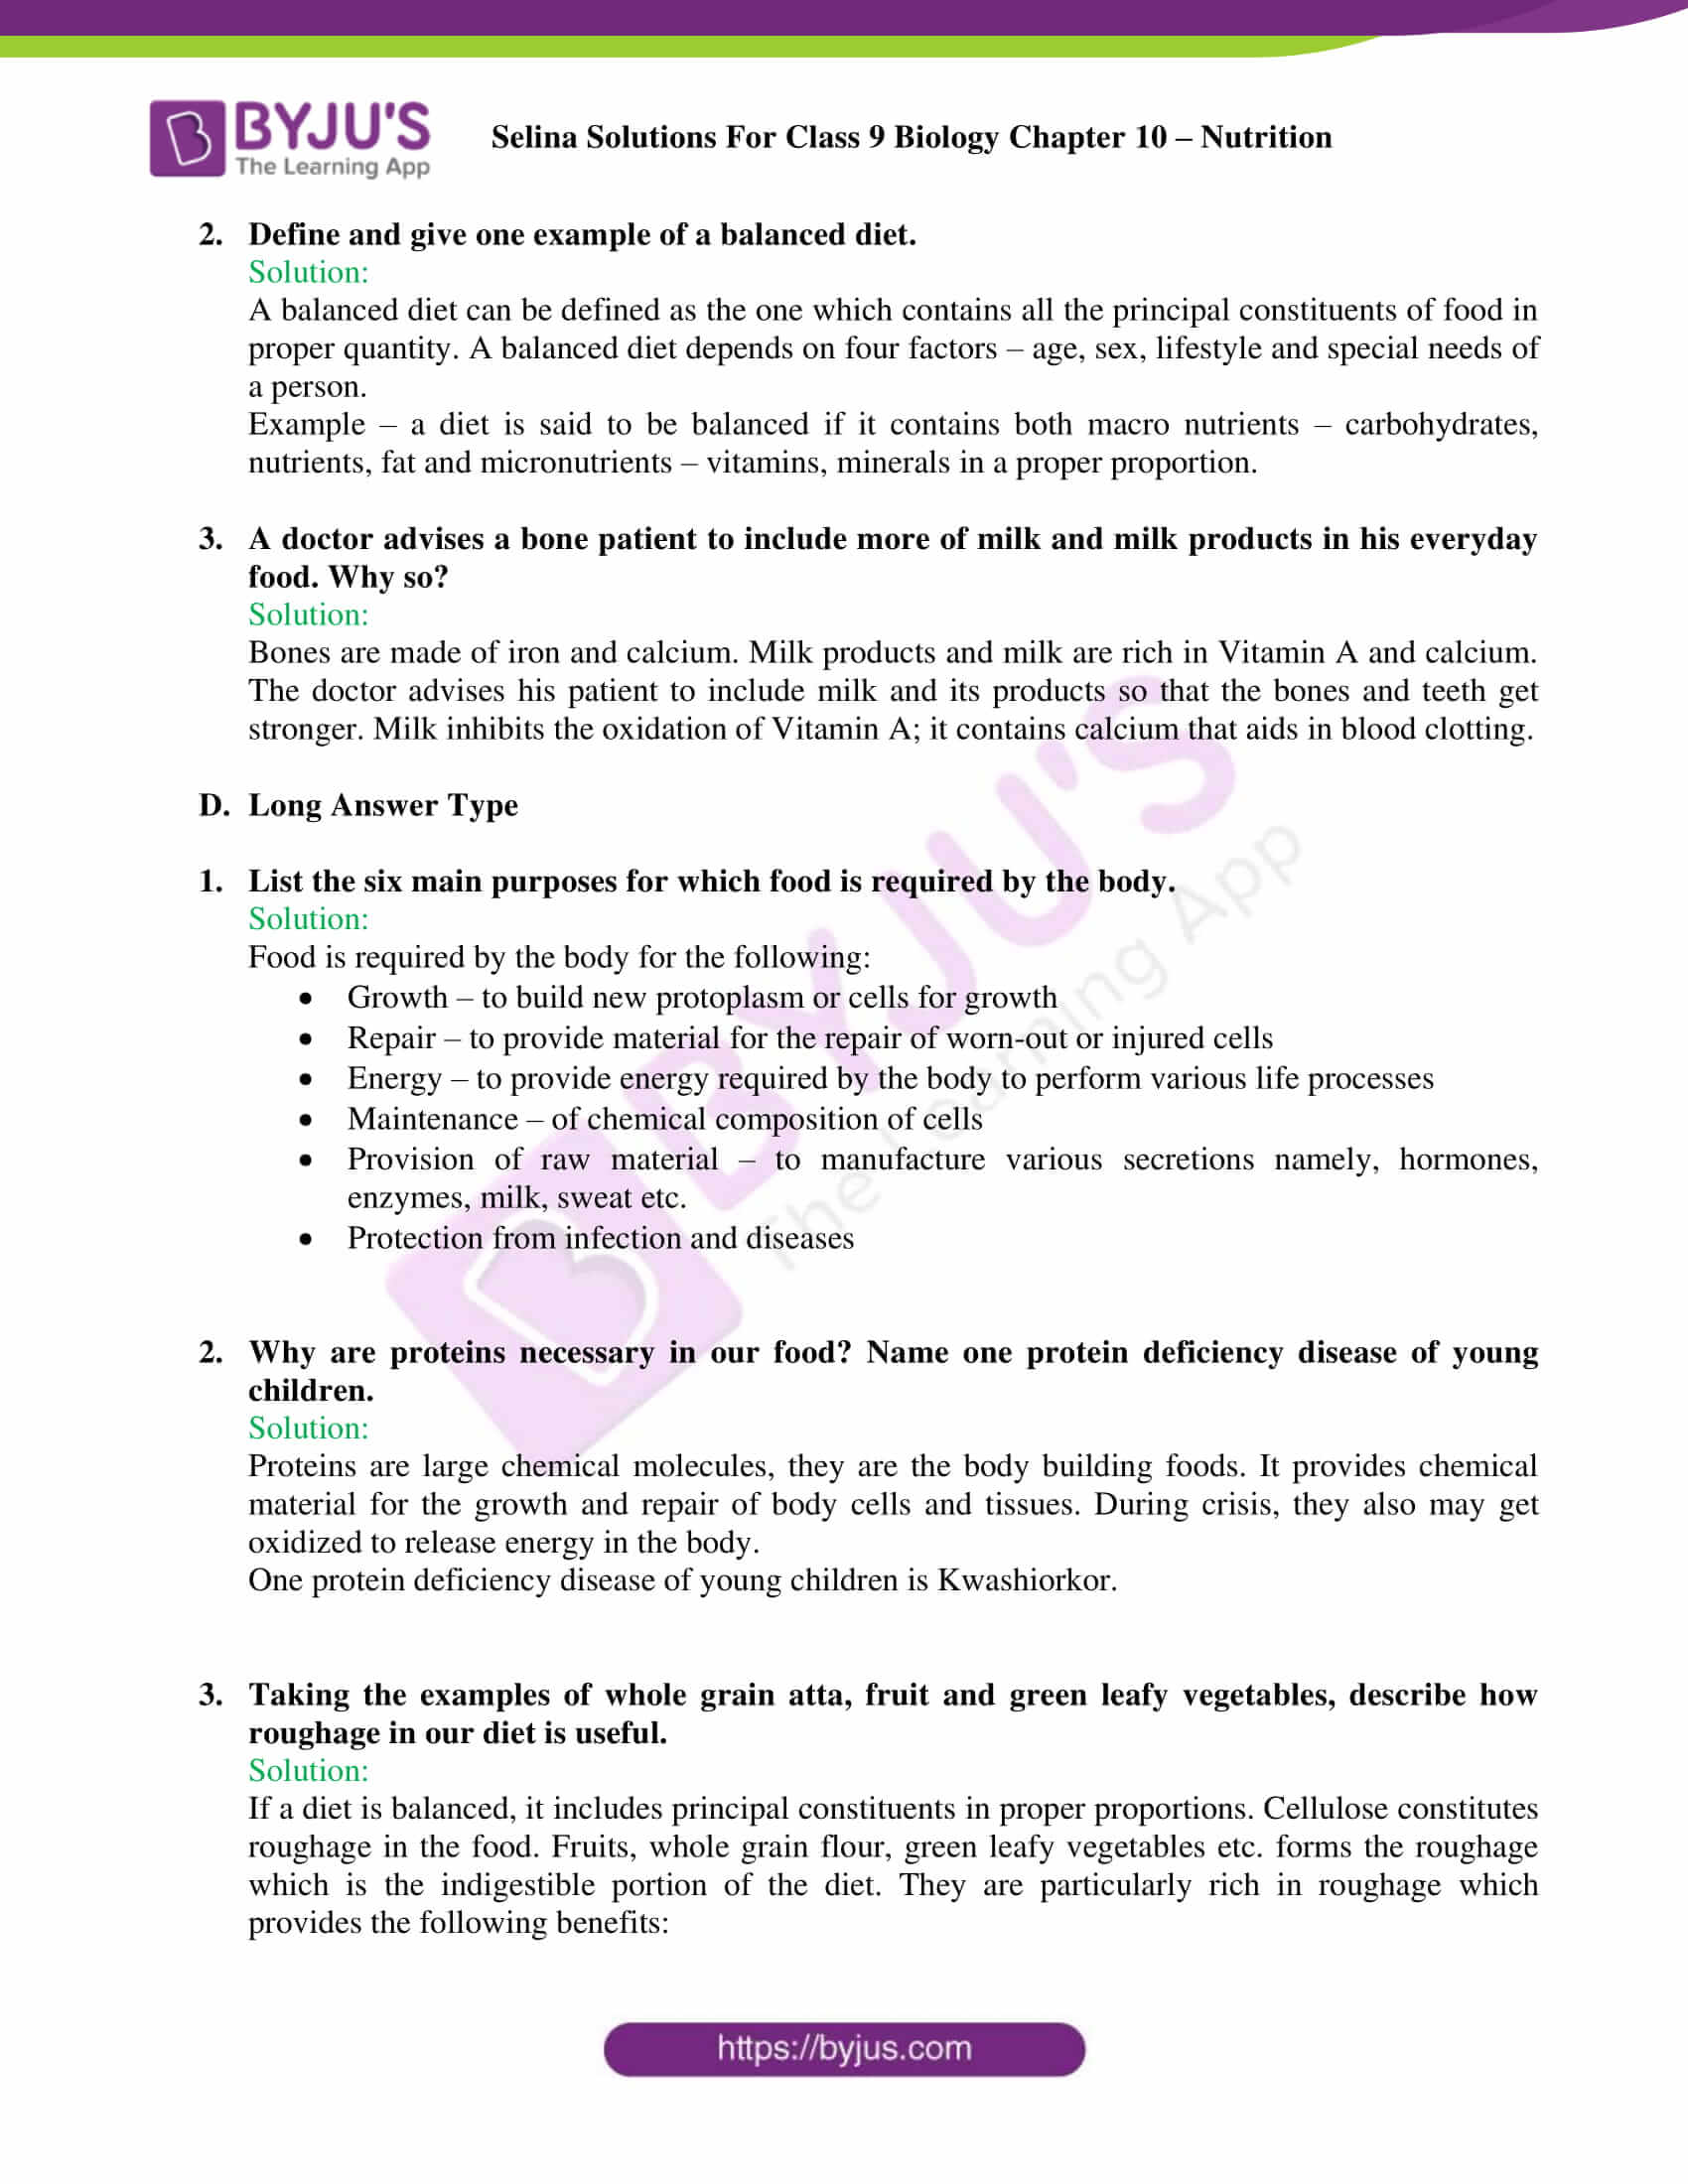 selina Solutions For Class 9 Biology Chapter 10 part 5